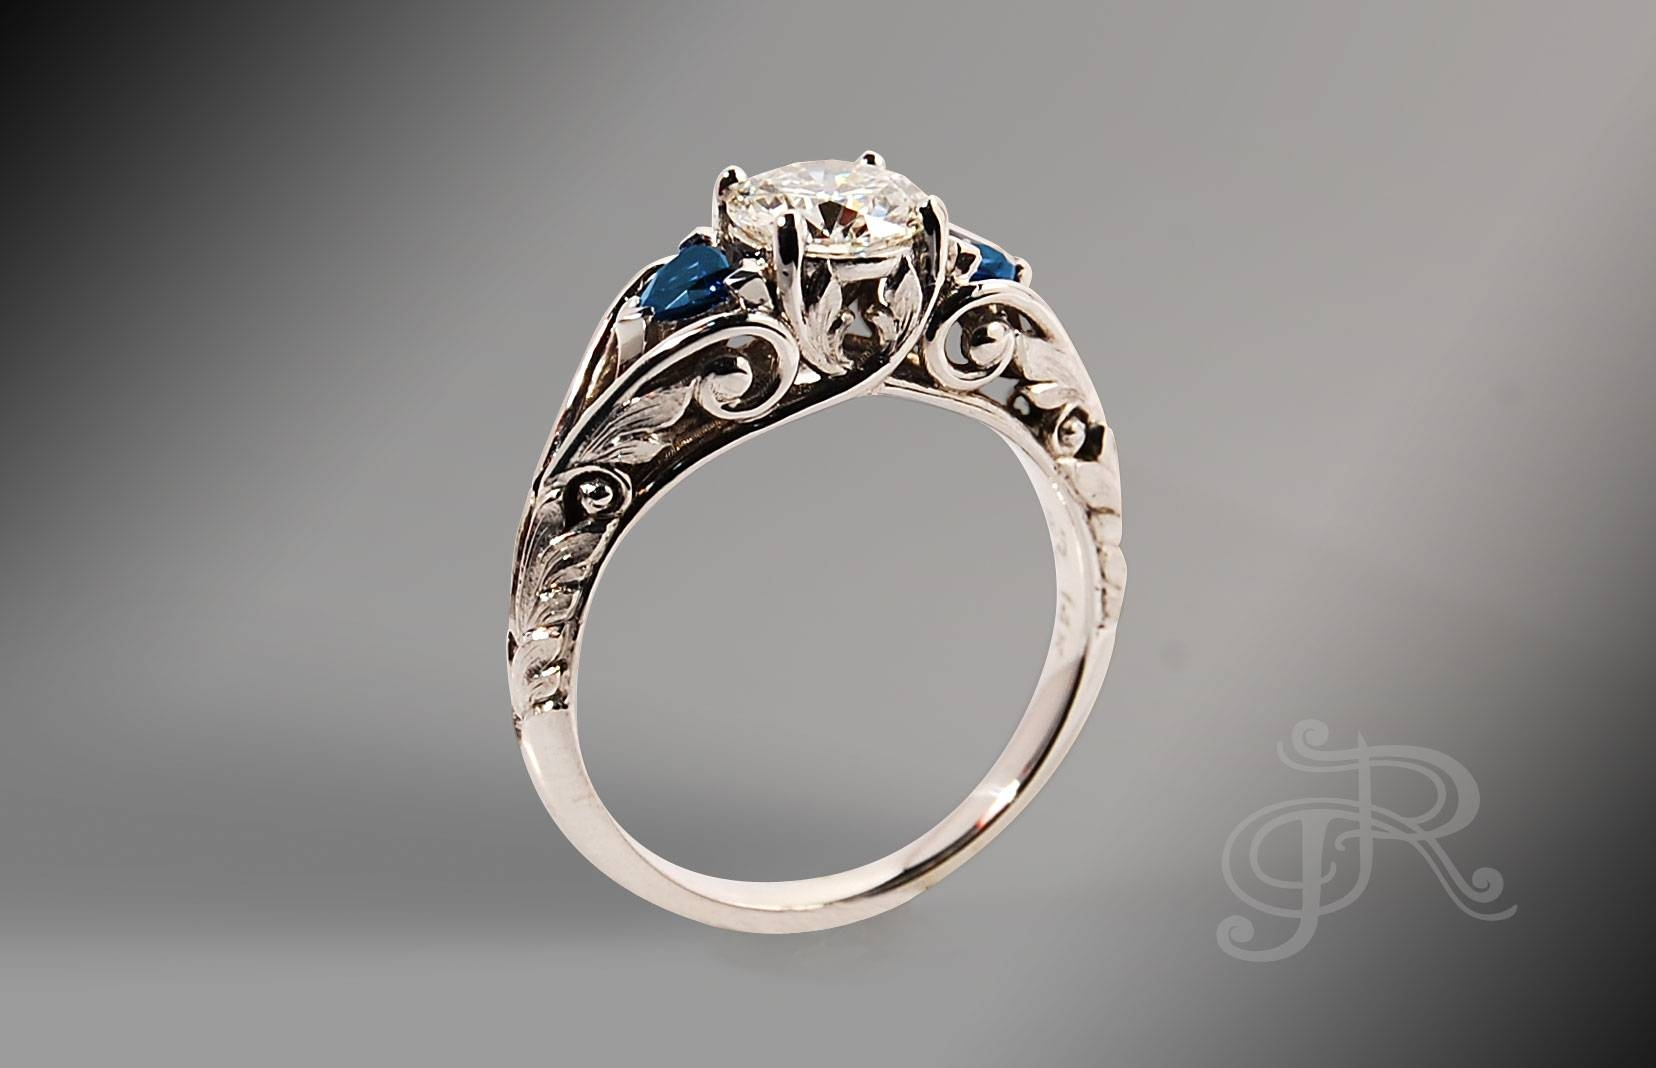 $100 3D Printed Engagement Ring With Regard To Tree Engagement Rings (View 1 of 15)